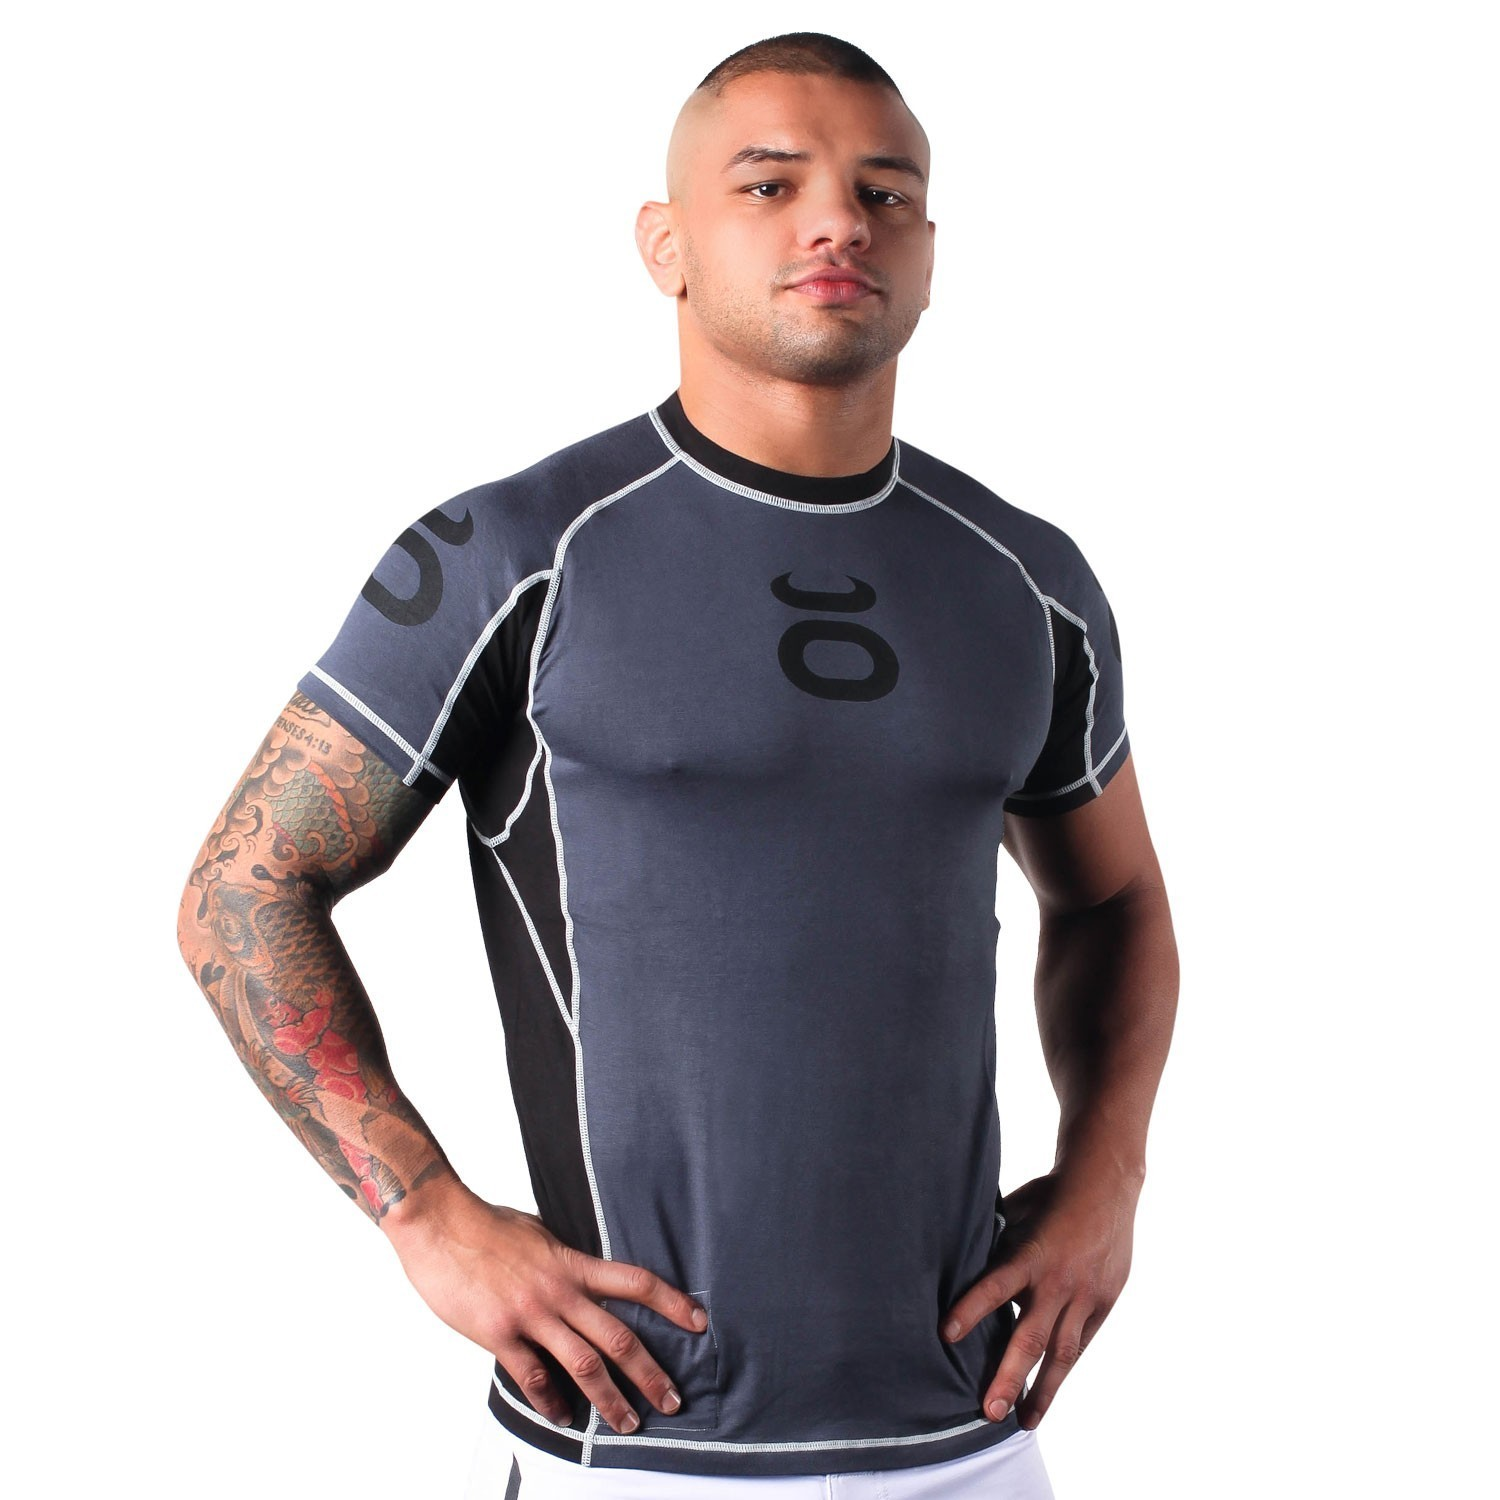 Bamboo Performance Training Top - Short Sleeve (Nubious Grey)